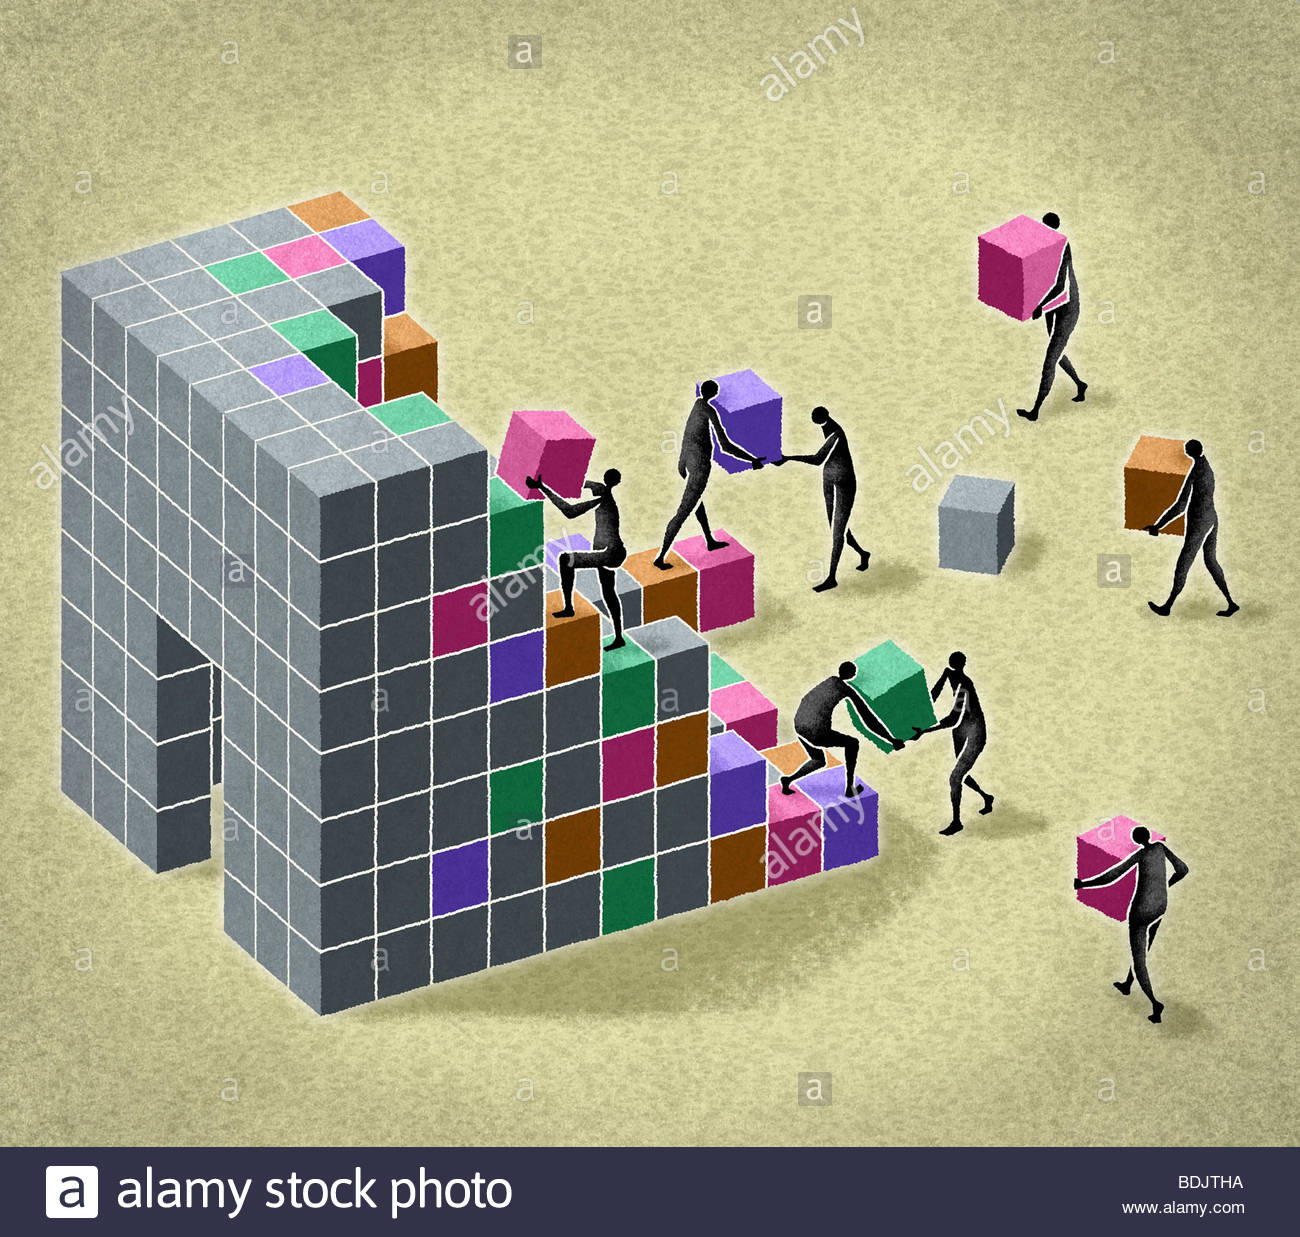 Business people building structure with blocks - Stock Image